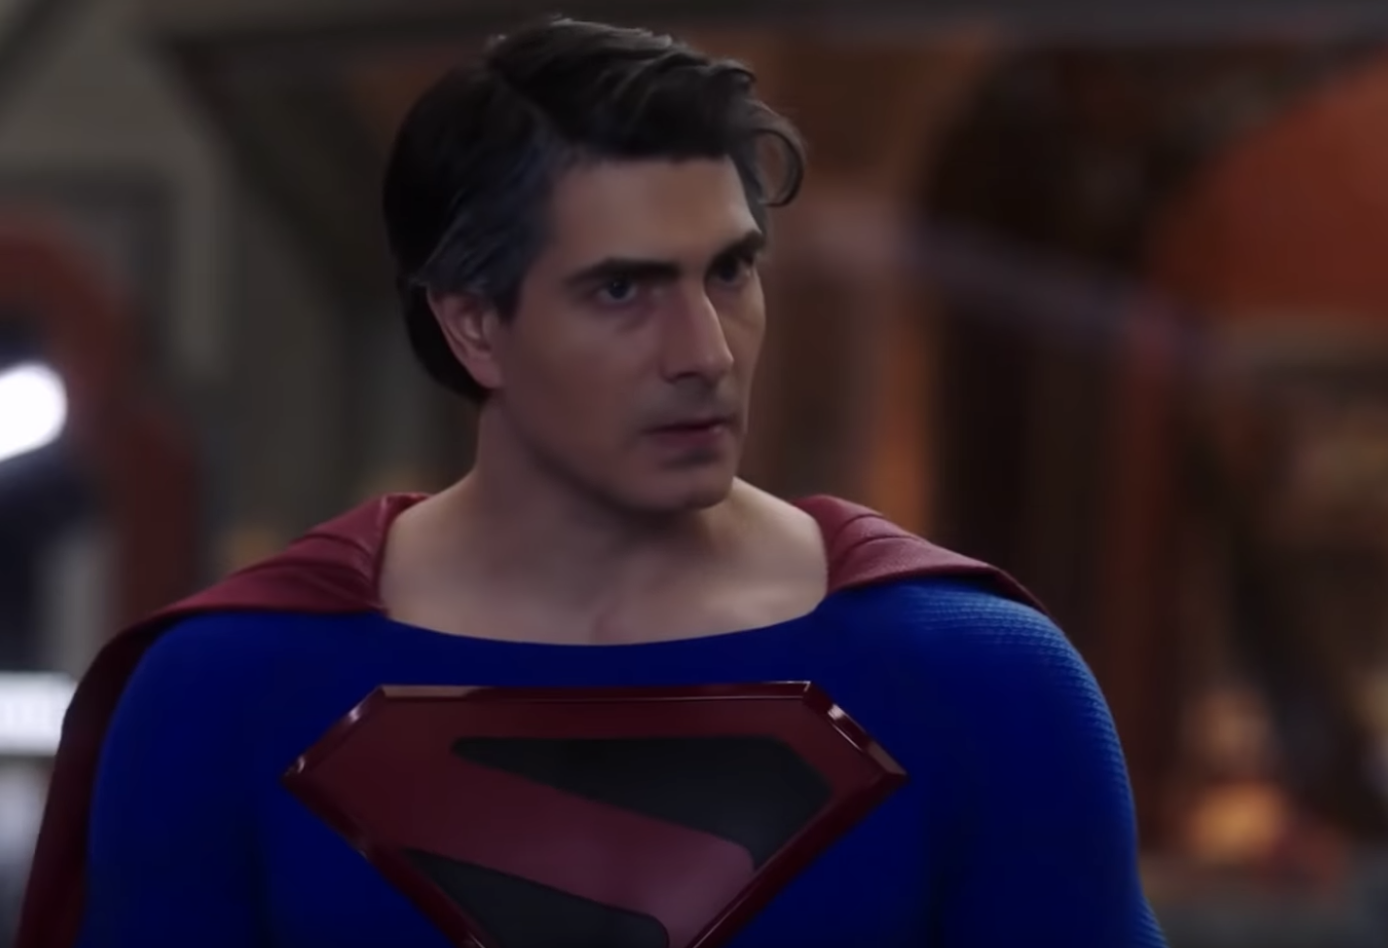 Crisis on Infinite Earths stars bonded over their disappointing Superman movies